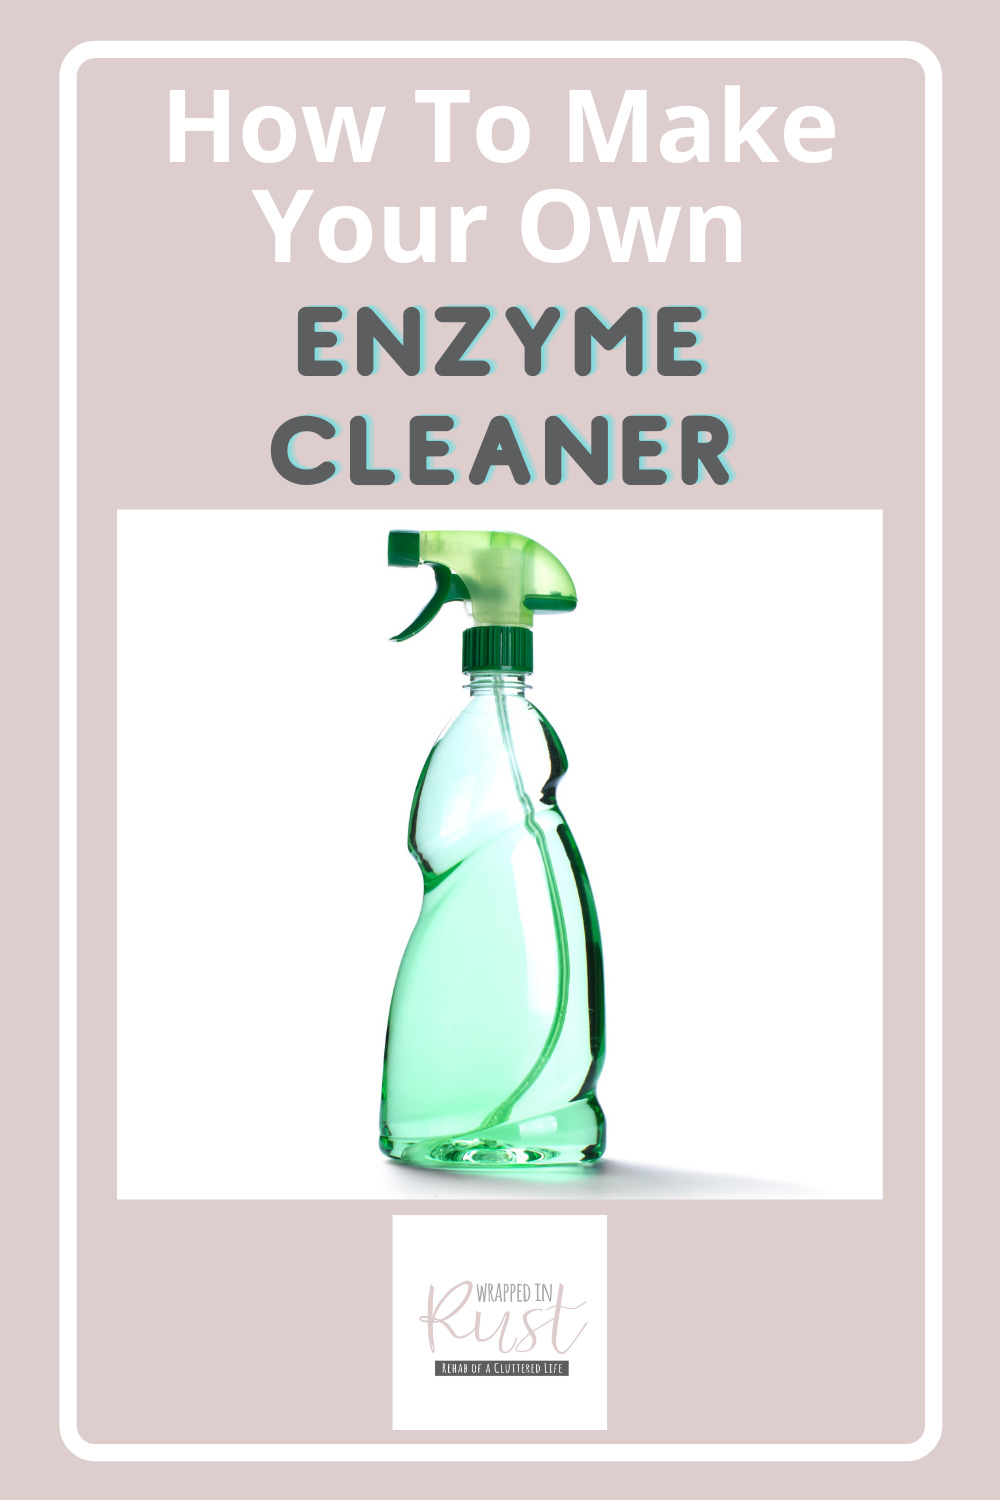 Wrappedinrust.com has creative solutions for tricky cleaning projects. Keep your dishes spotless without overspending on store bought solution. Learn how to make enzyme cleaner all on your own!